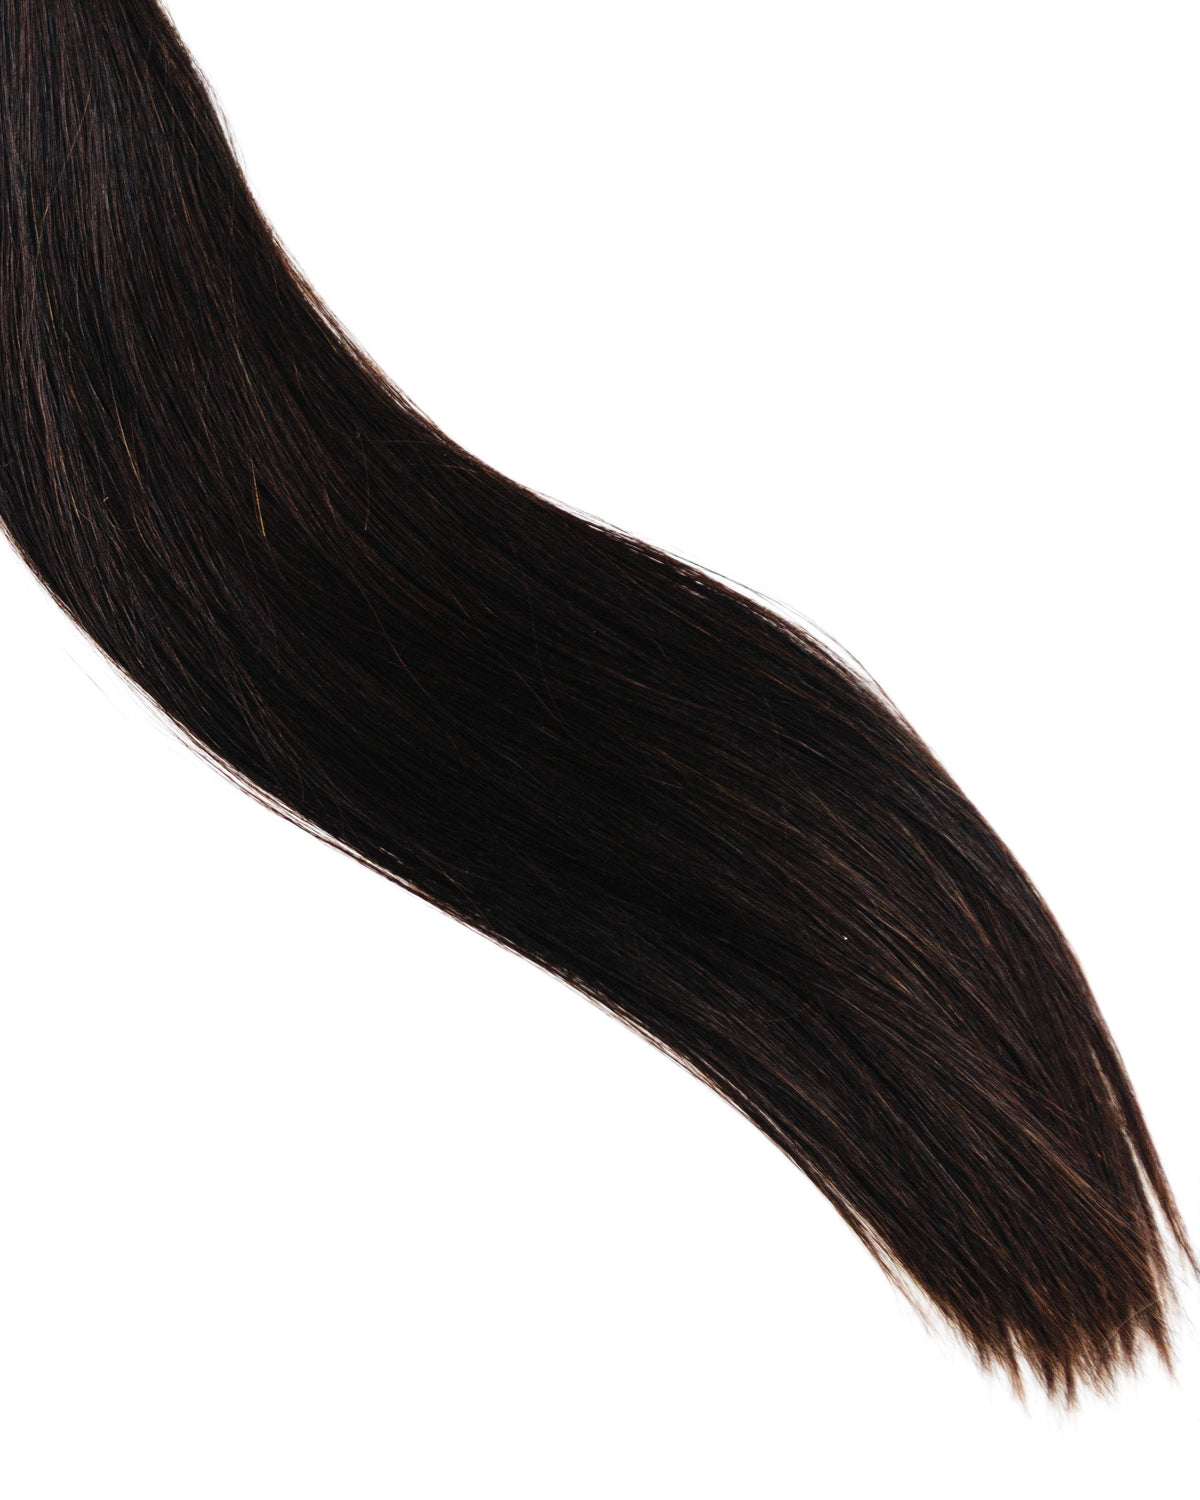 Laced Hair I-Tip Extensions #1B (Dark Roast)